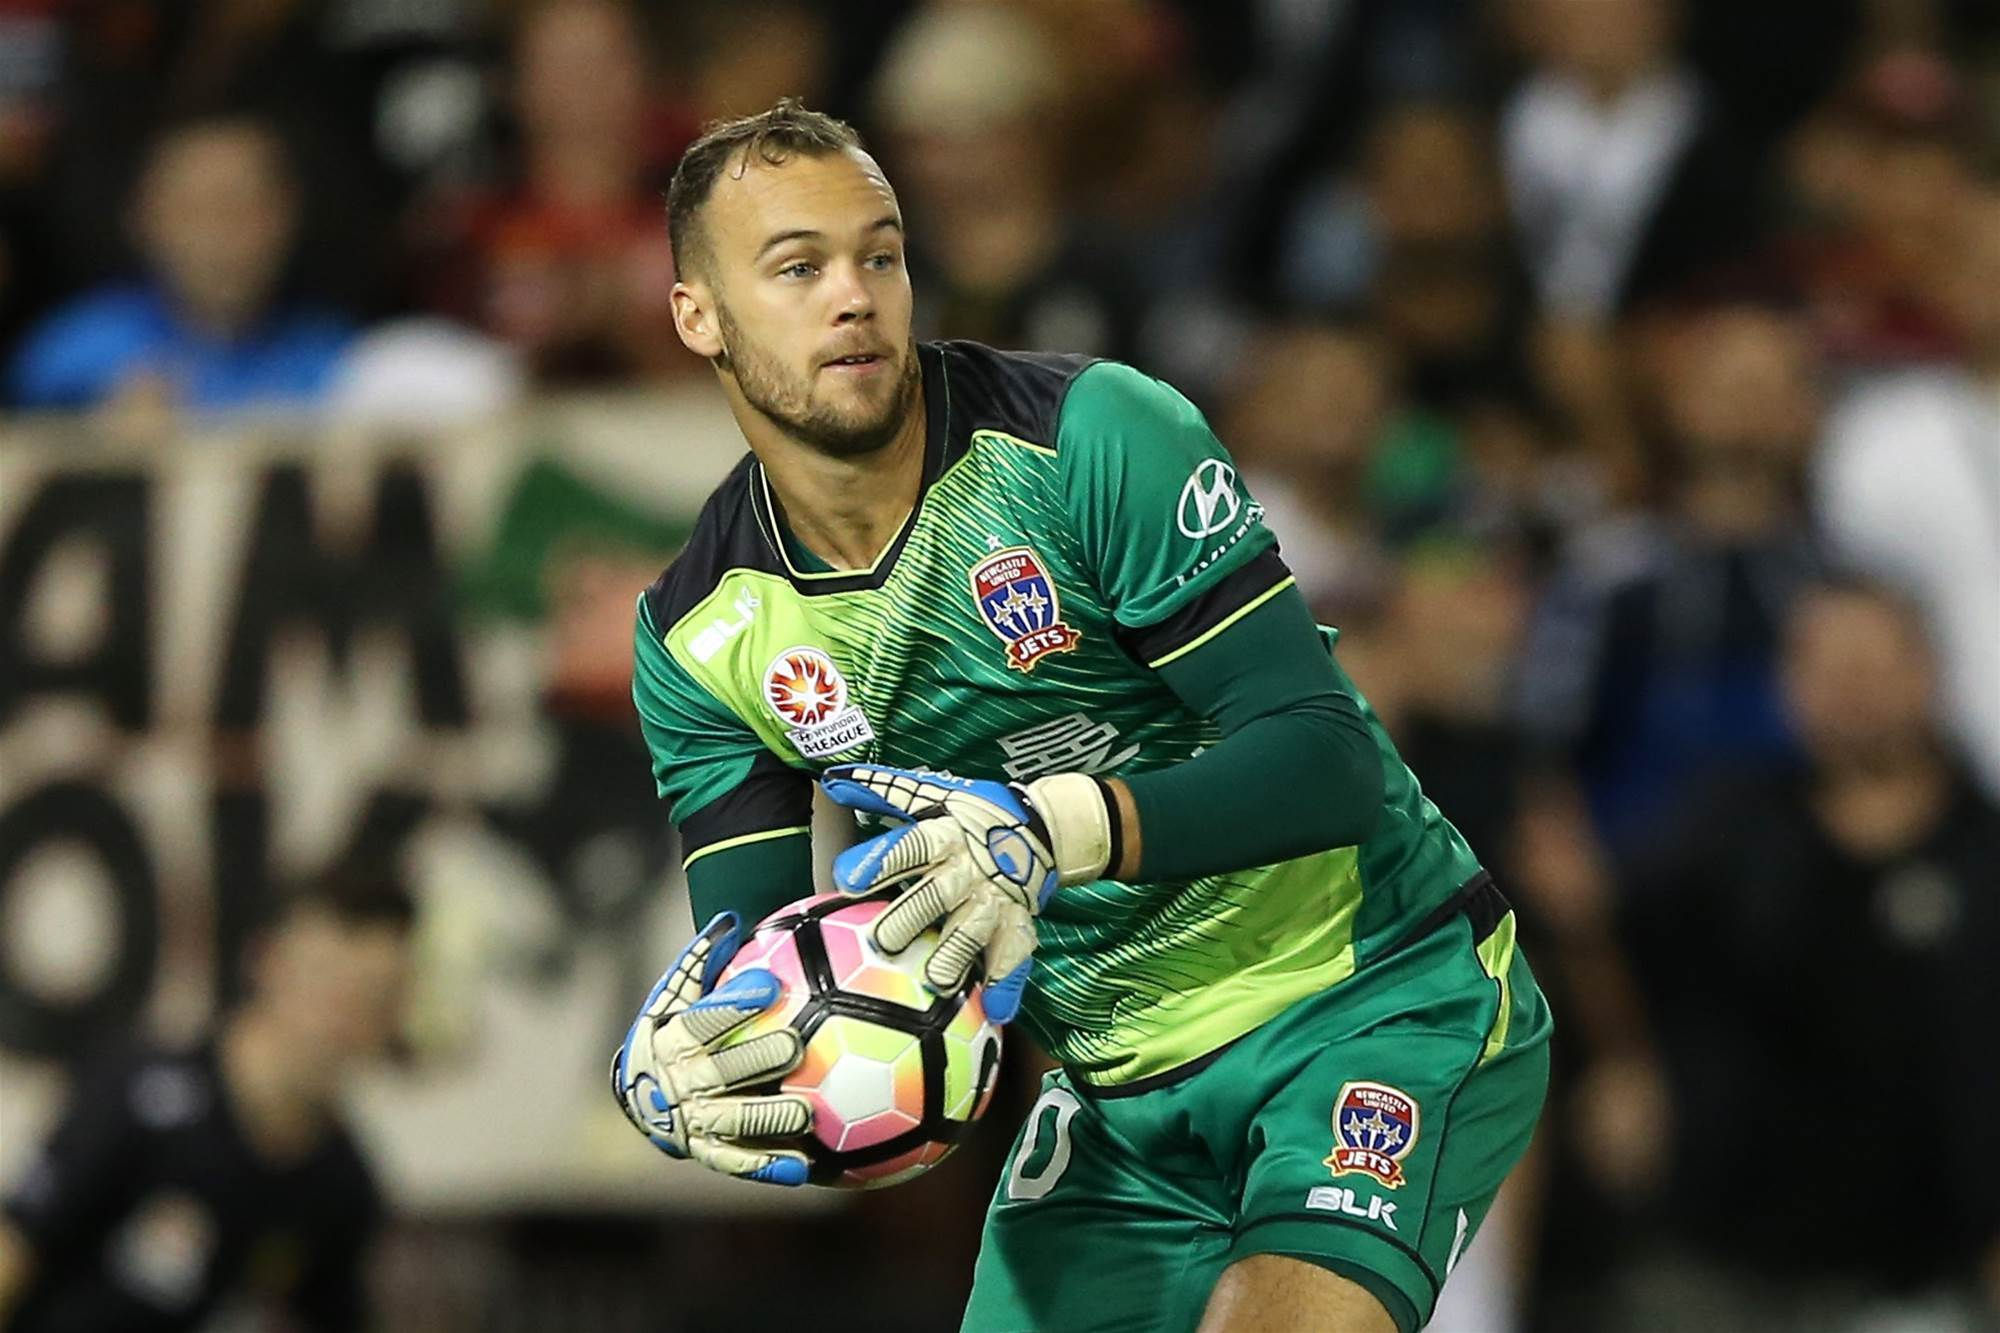 Jets appoint goalkeeping coach